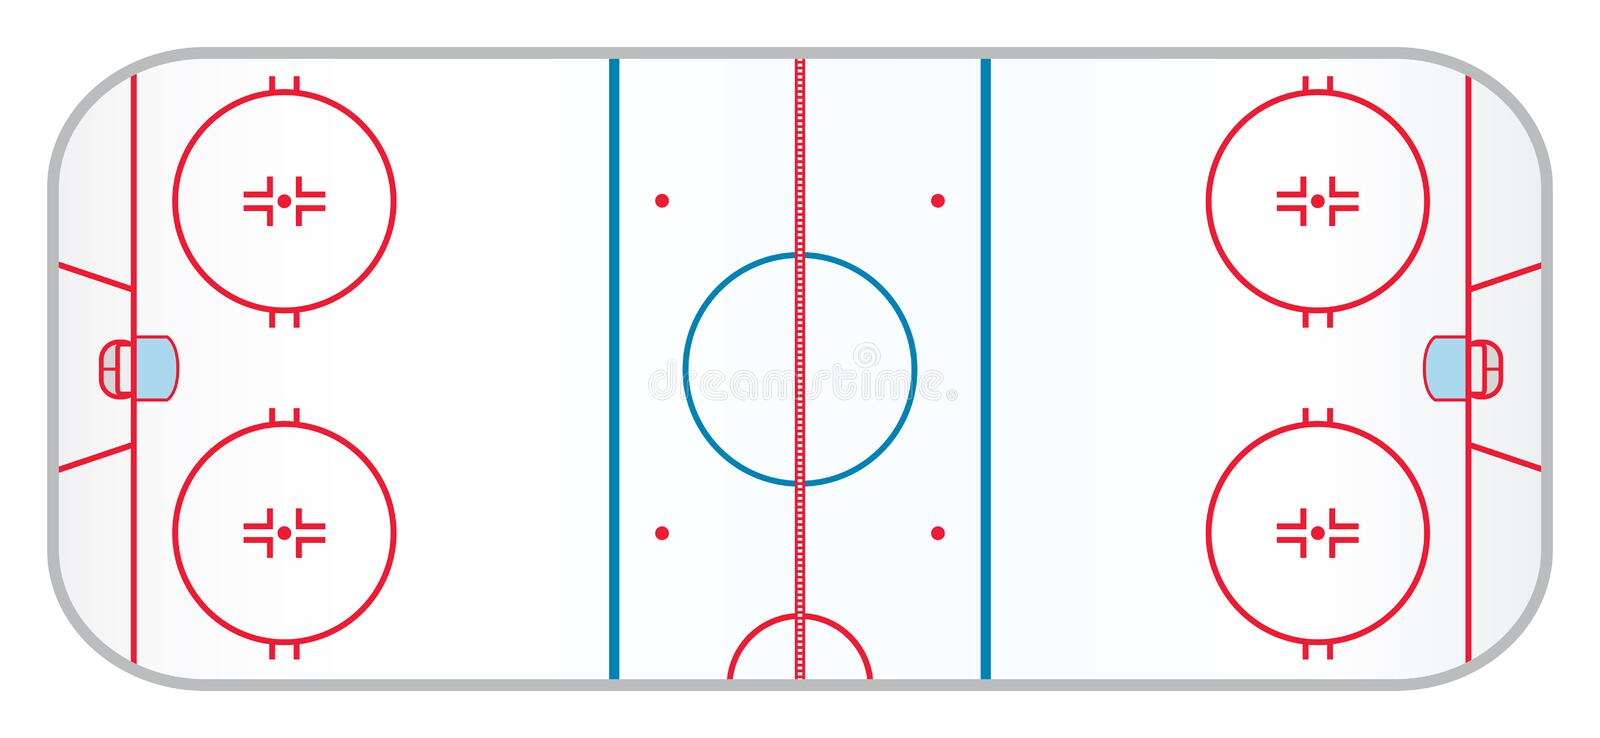 Hockeyisbana vektor illustrationer